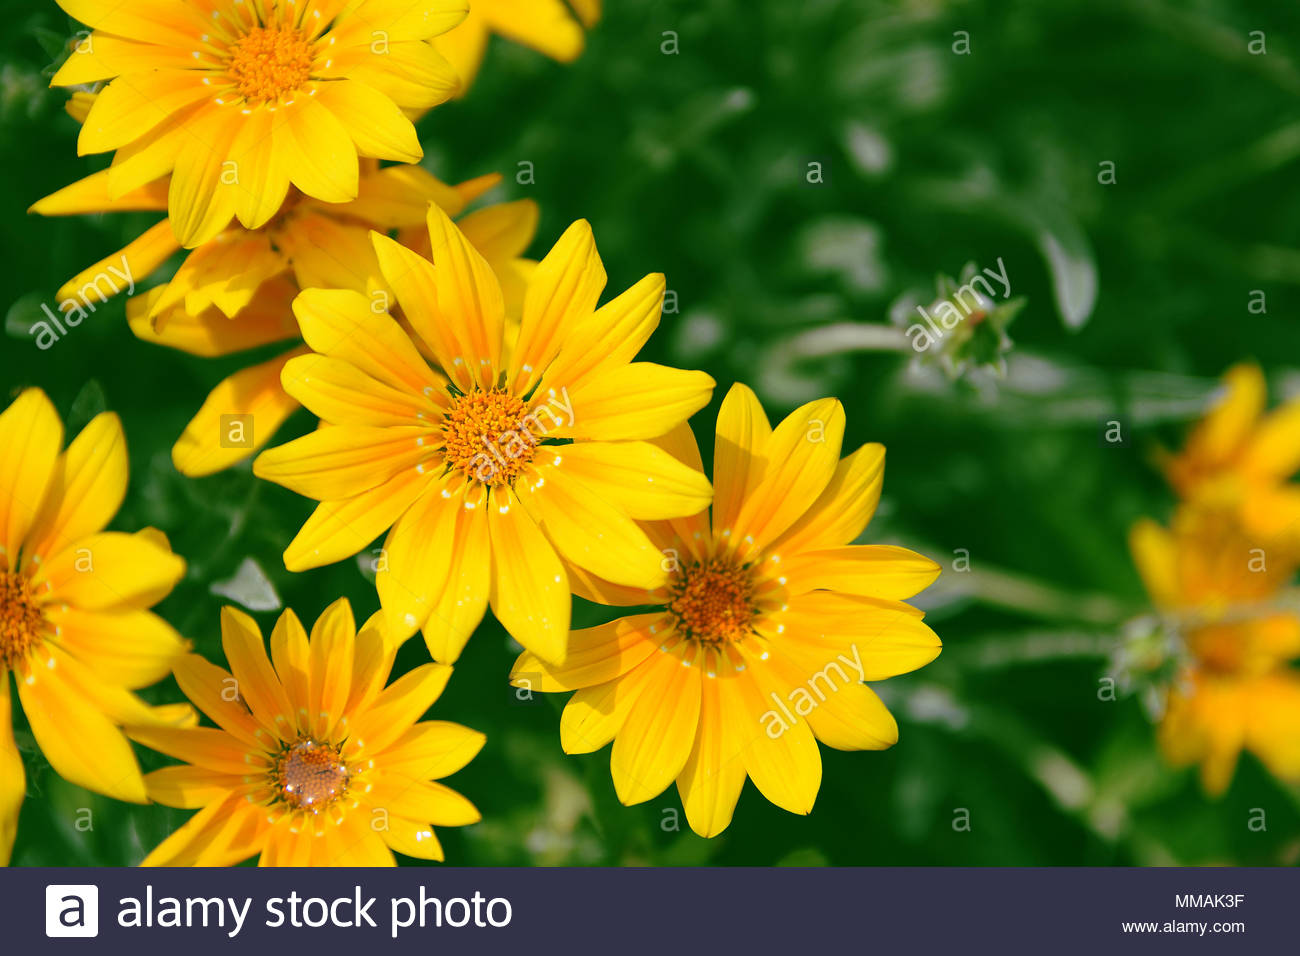 Yellow marguerites and dysies against a green natural background 1300x956